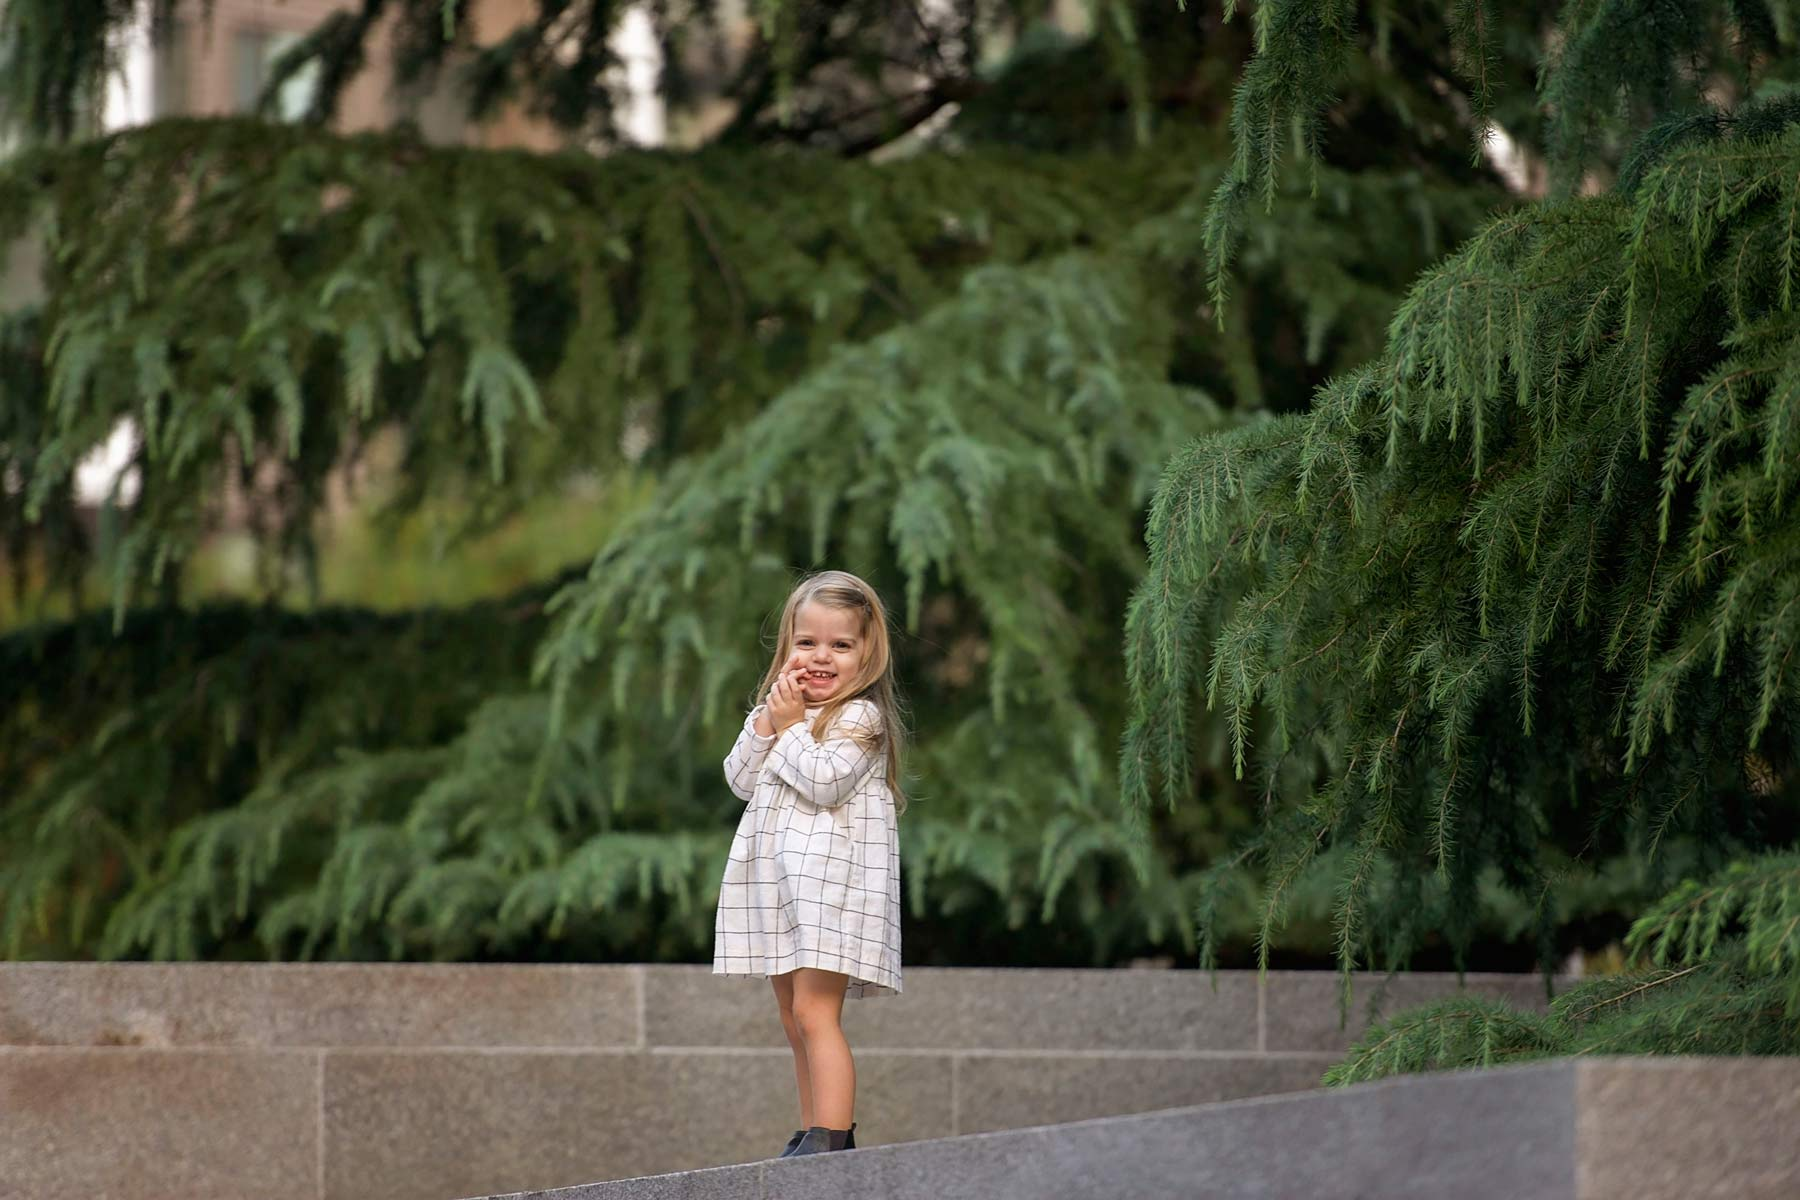 little girl in white dress and boots standing amidst evergreen trees